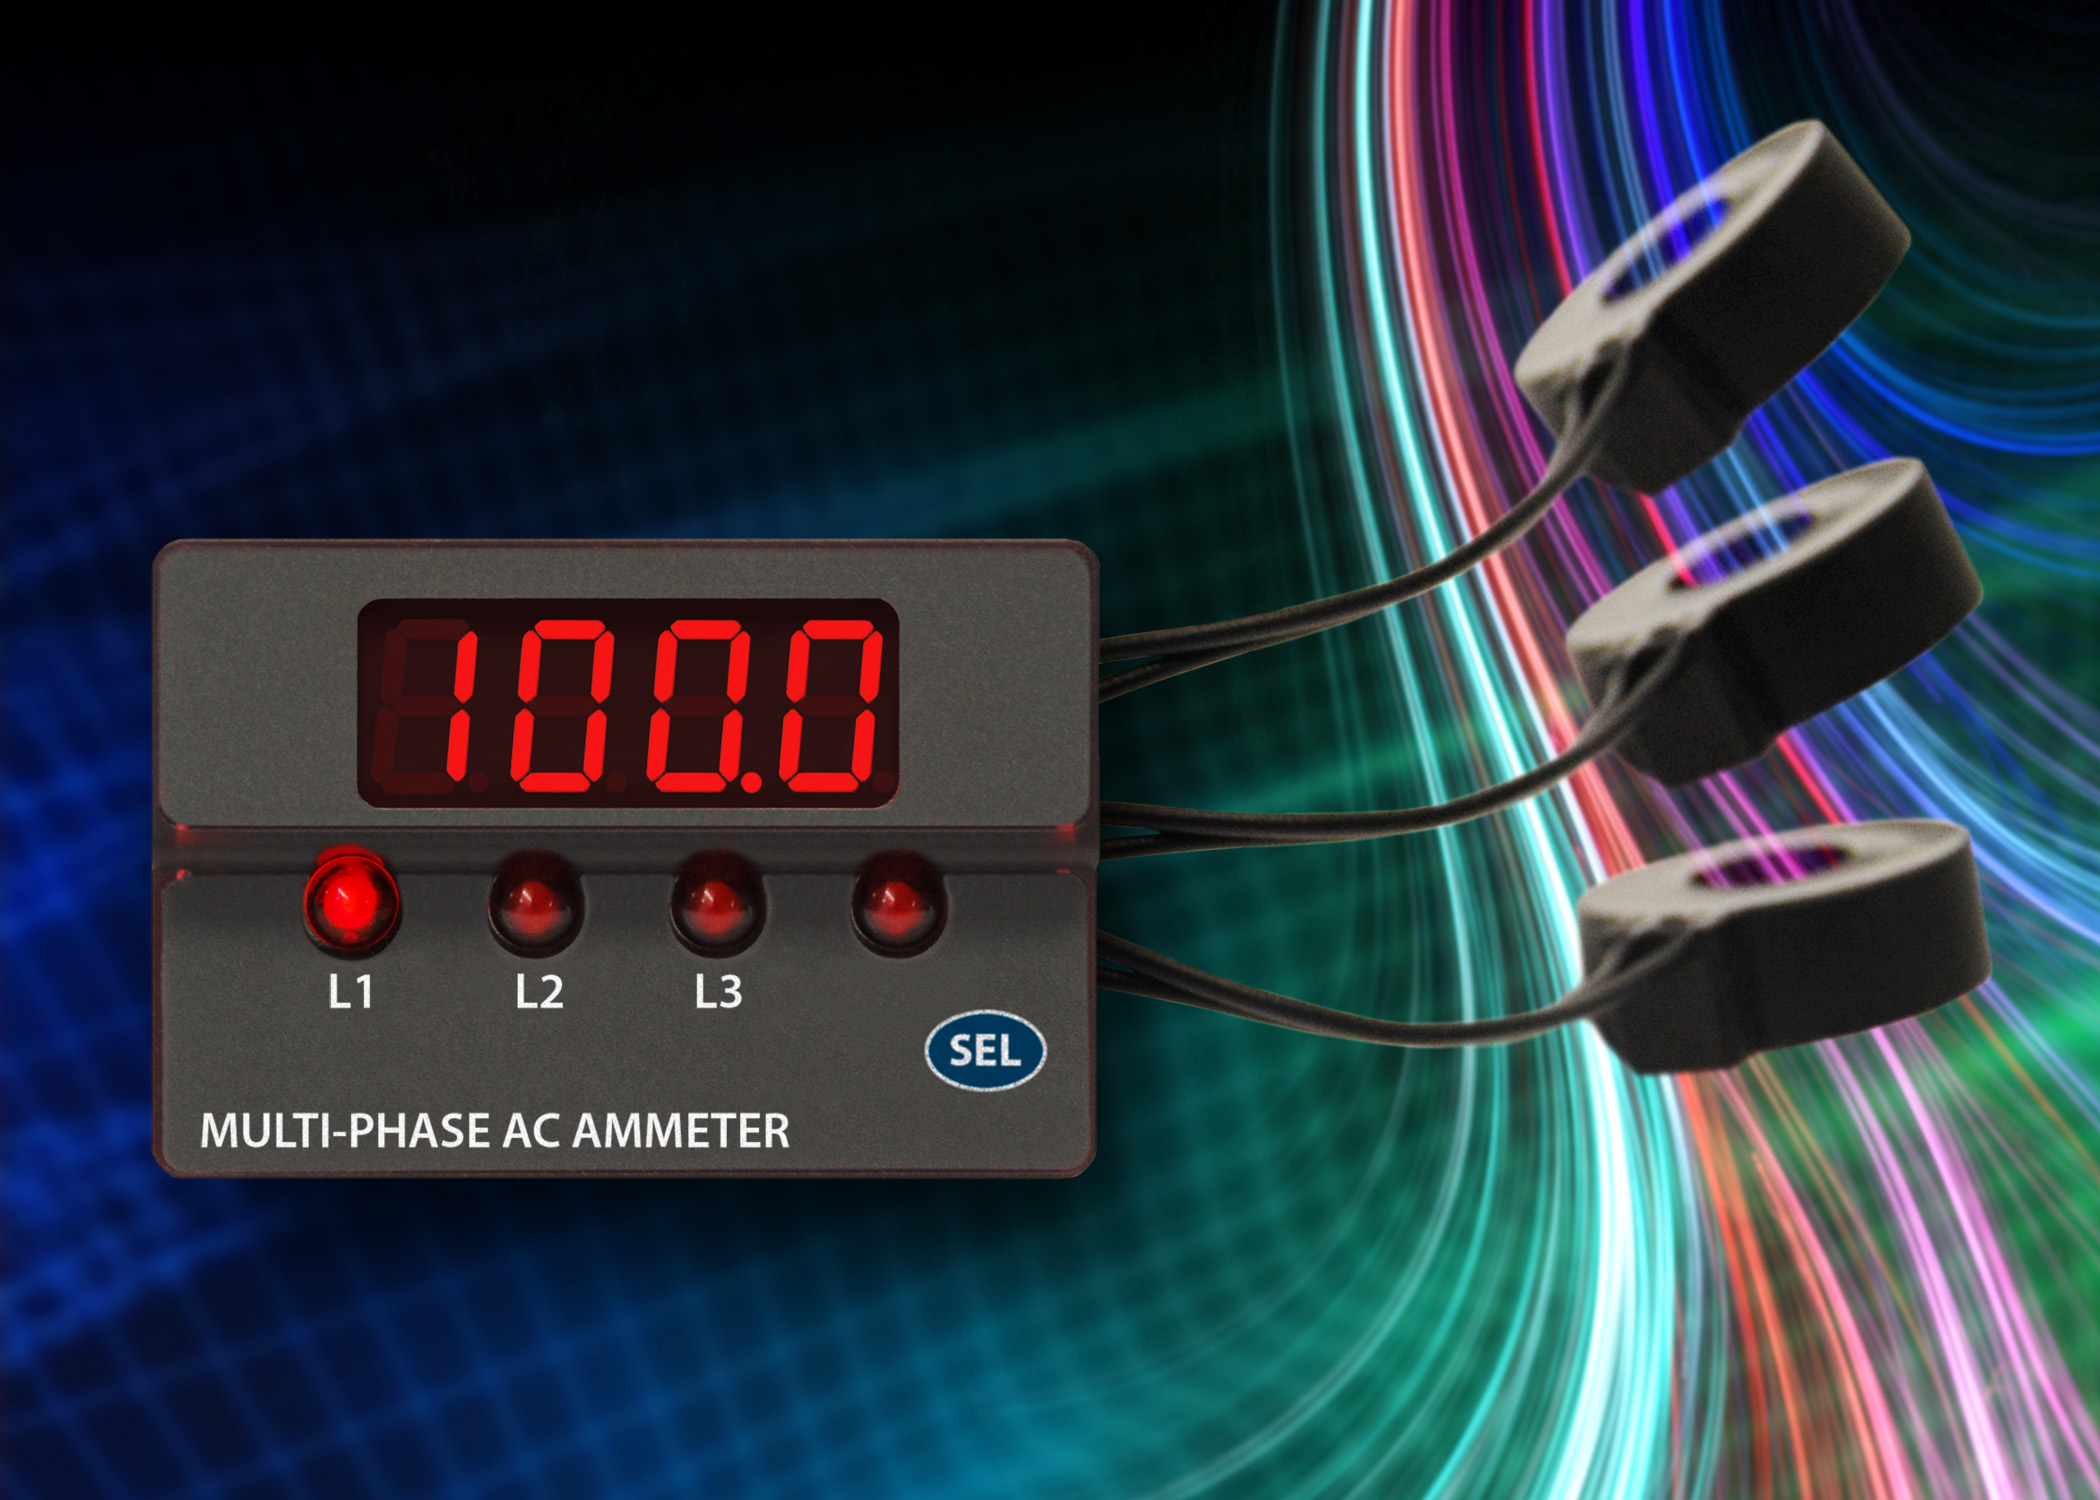 Digital Panel Meter : ACM3P 3-phase AC digital ammeter with built-in current transformers